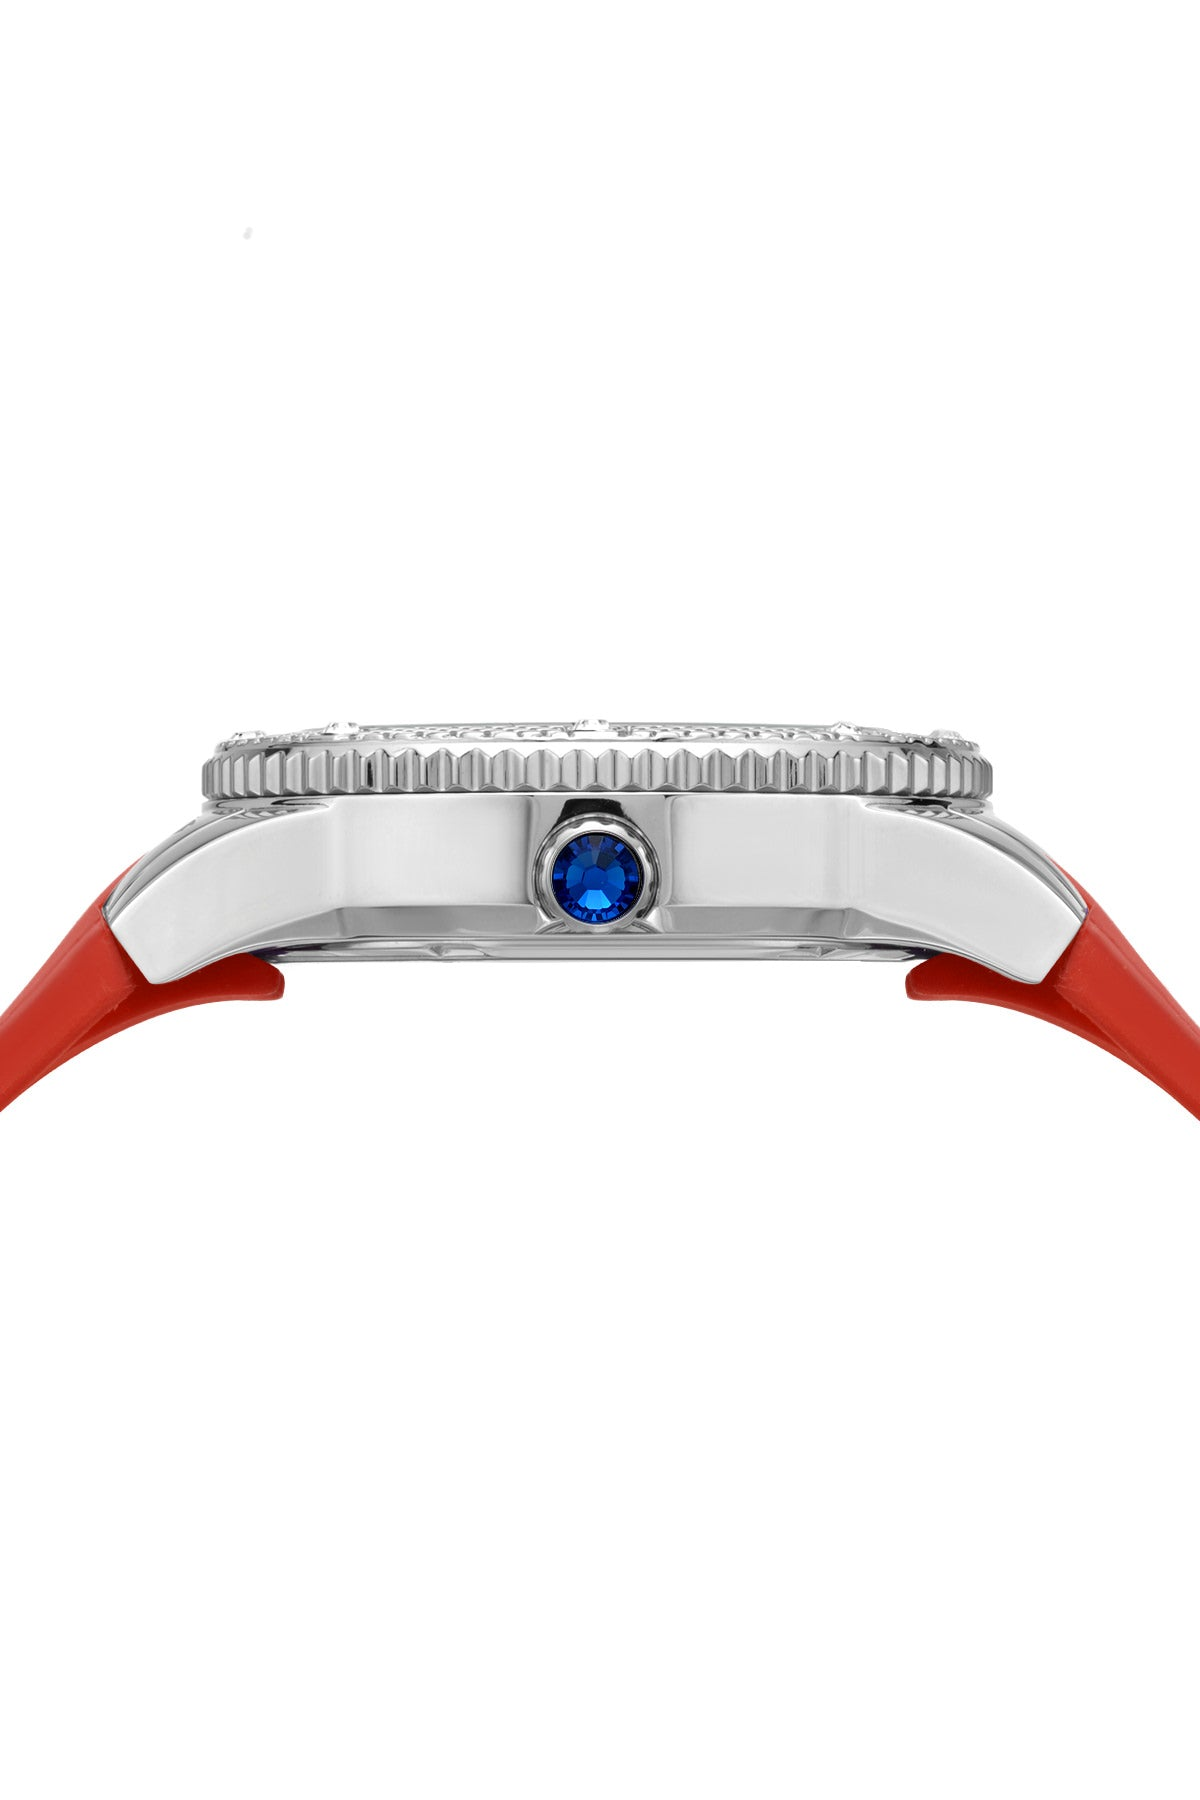 Porsamo Bleu Linda luxury women's watch, silicone strap, silver, red 493ALIR